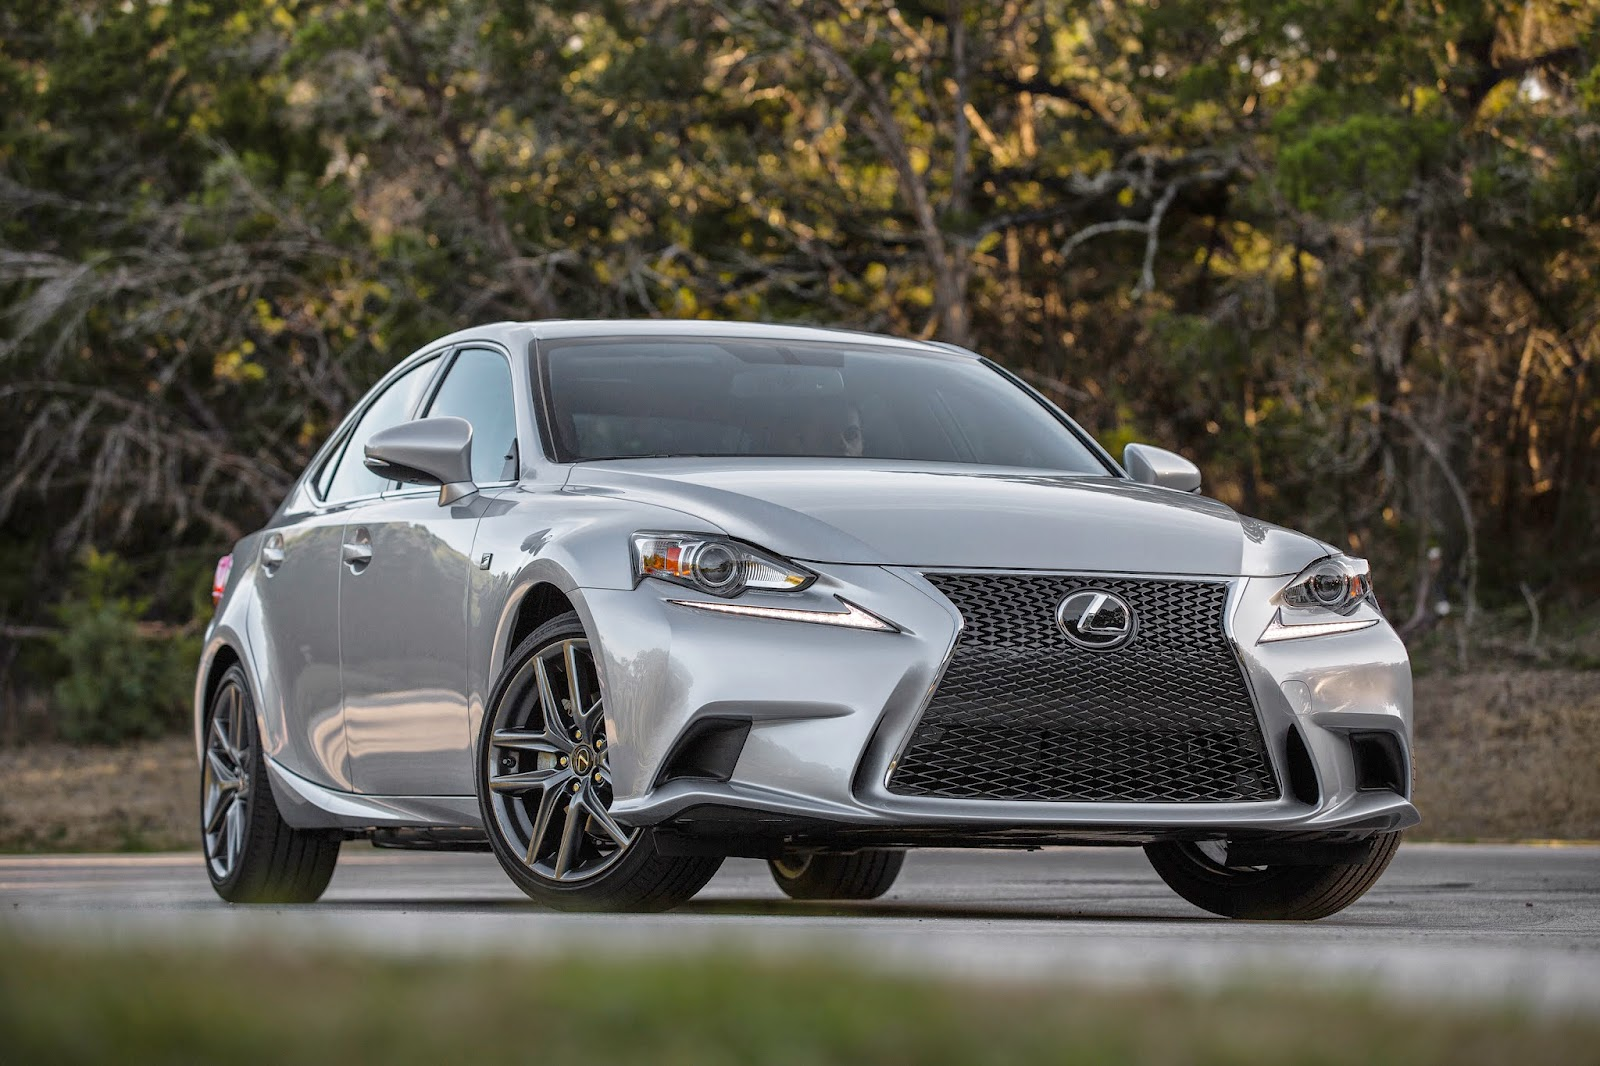 Front 3/4 view of the 2015 Lexus IS350 F-SPORT